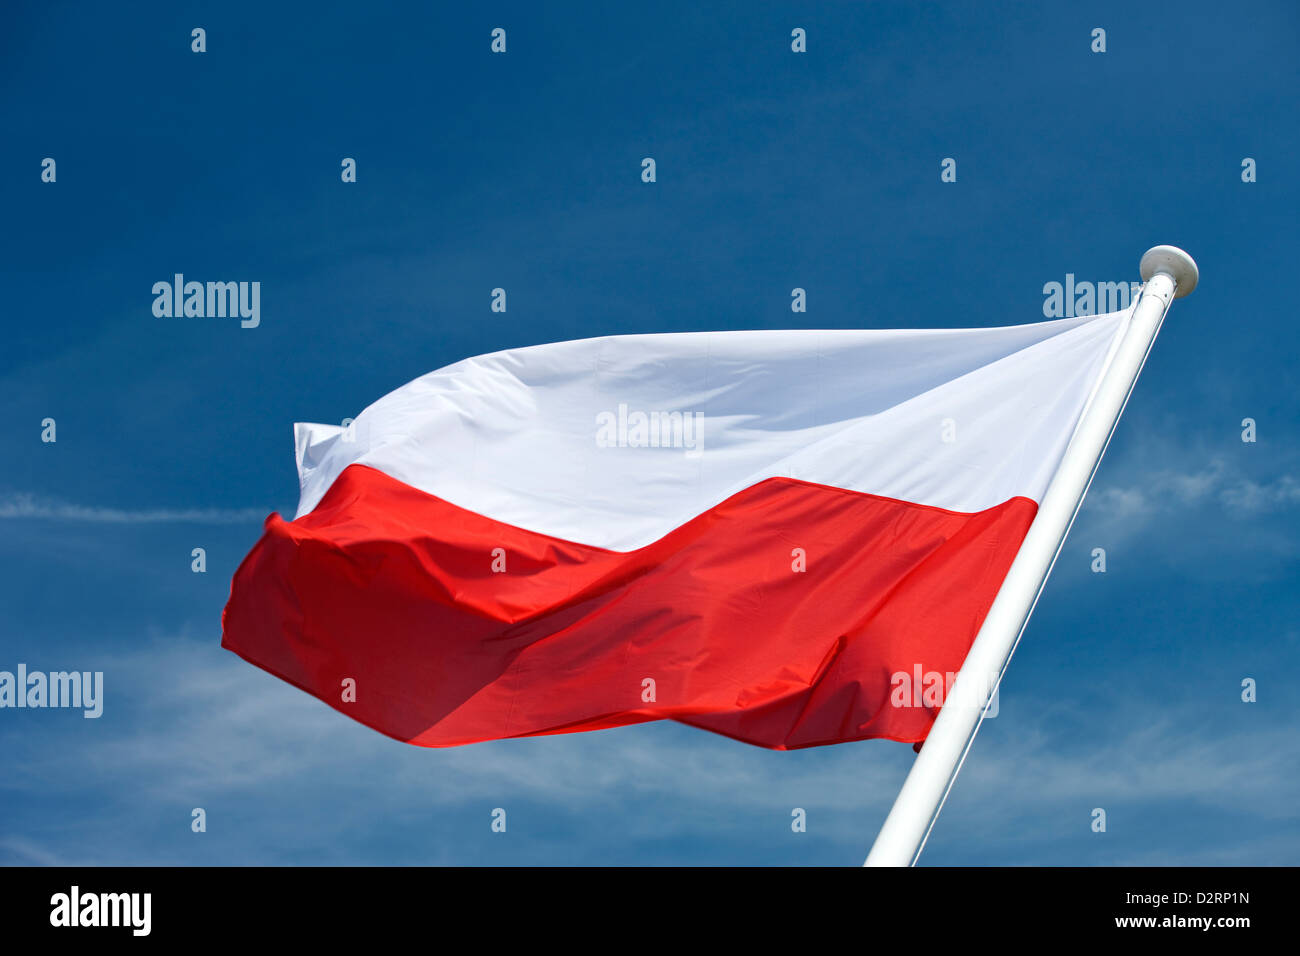 POLISH FLAG FLYING ON FLAGPOLE - Stock Image